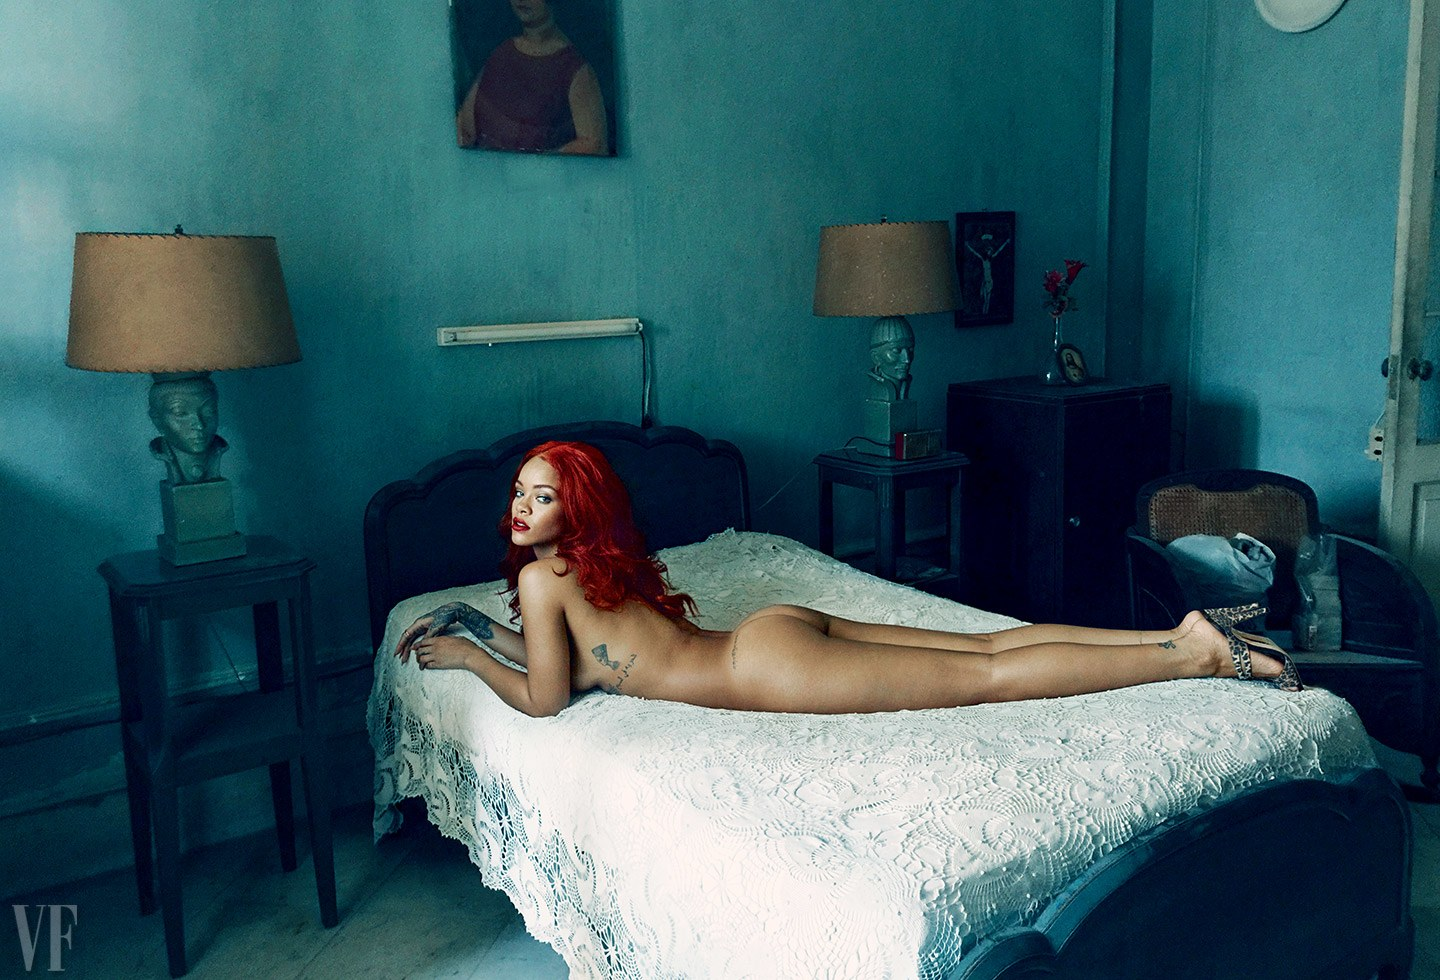 Rihanna for Vanity Fair 2015 Photoshoot